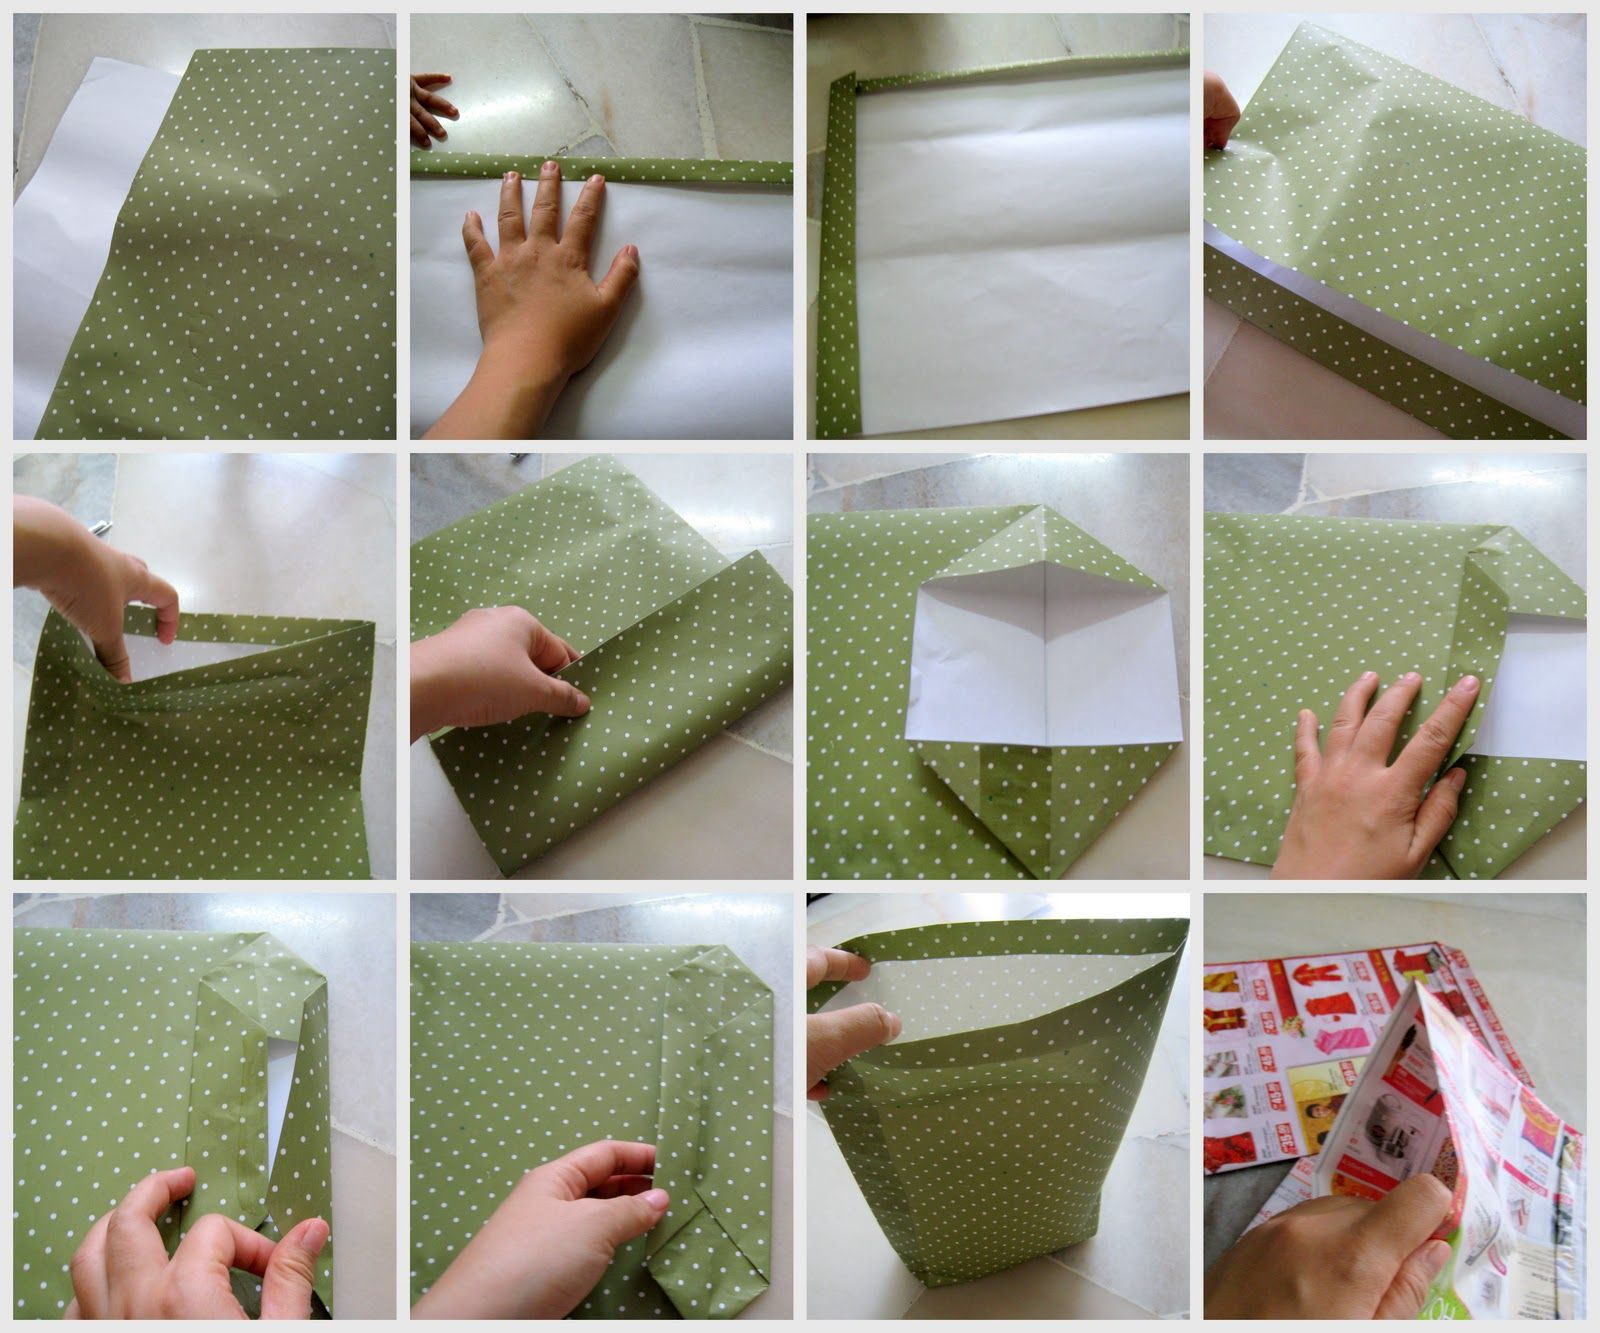 Teh Tarik Junction: How to make a paper bag | Crafts / DIY | Pinterest